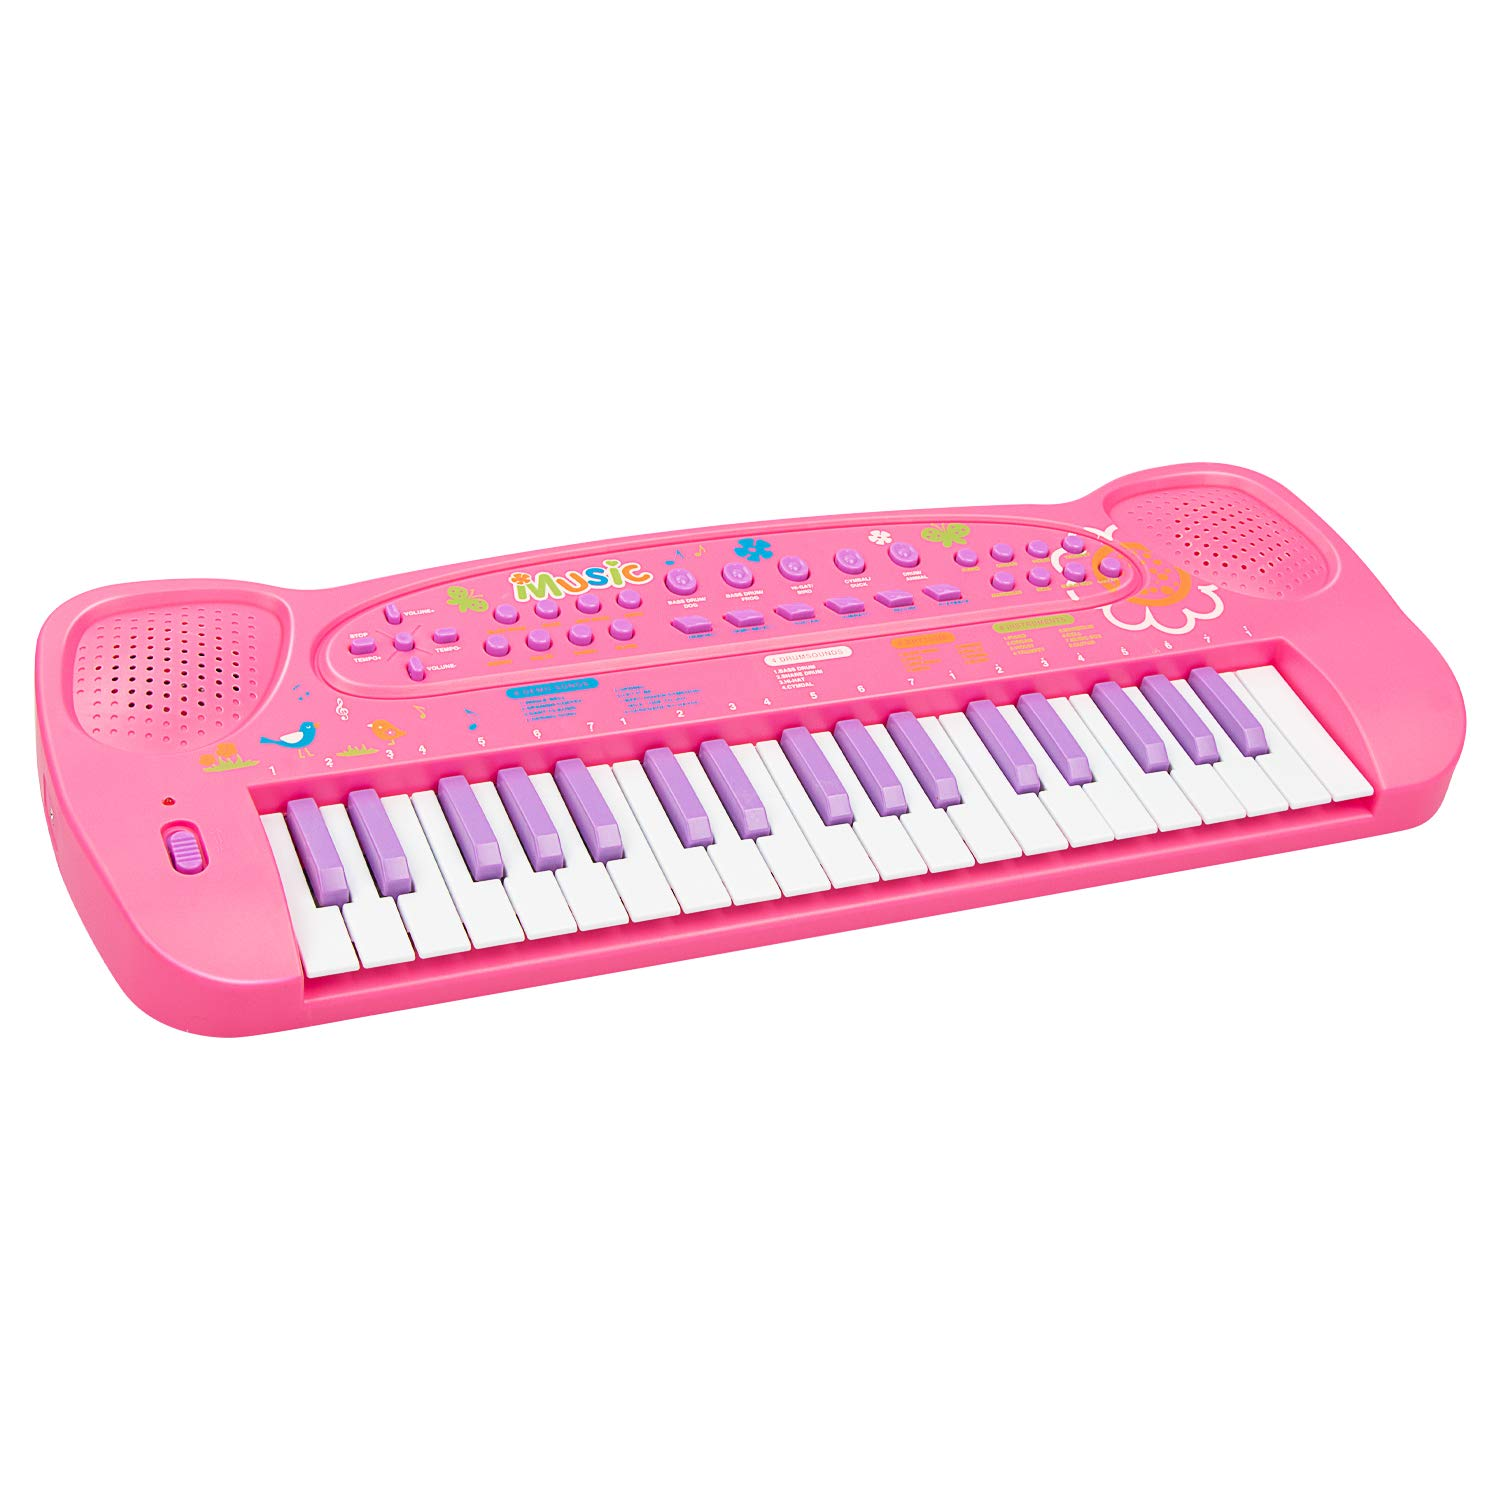 aPerfectLife 37 Keys Piano Keyboard for Kids Multifunction Portable Piano Electronic Keyboard Music Instrument for Kids Early Learning Educational Toy for 3-10 Year Old Girls Boys (Pink)